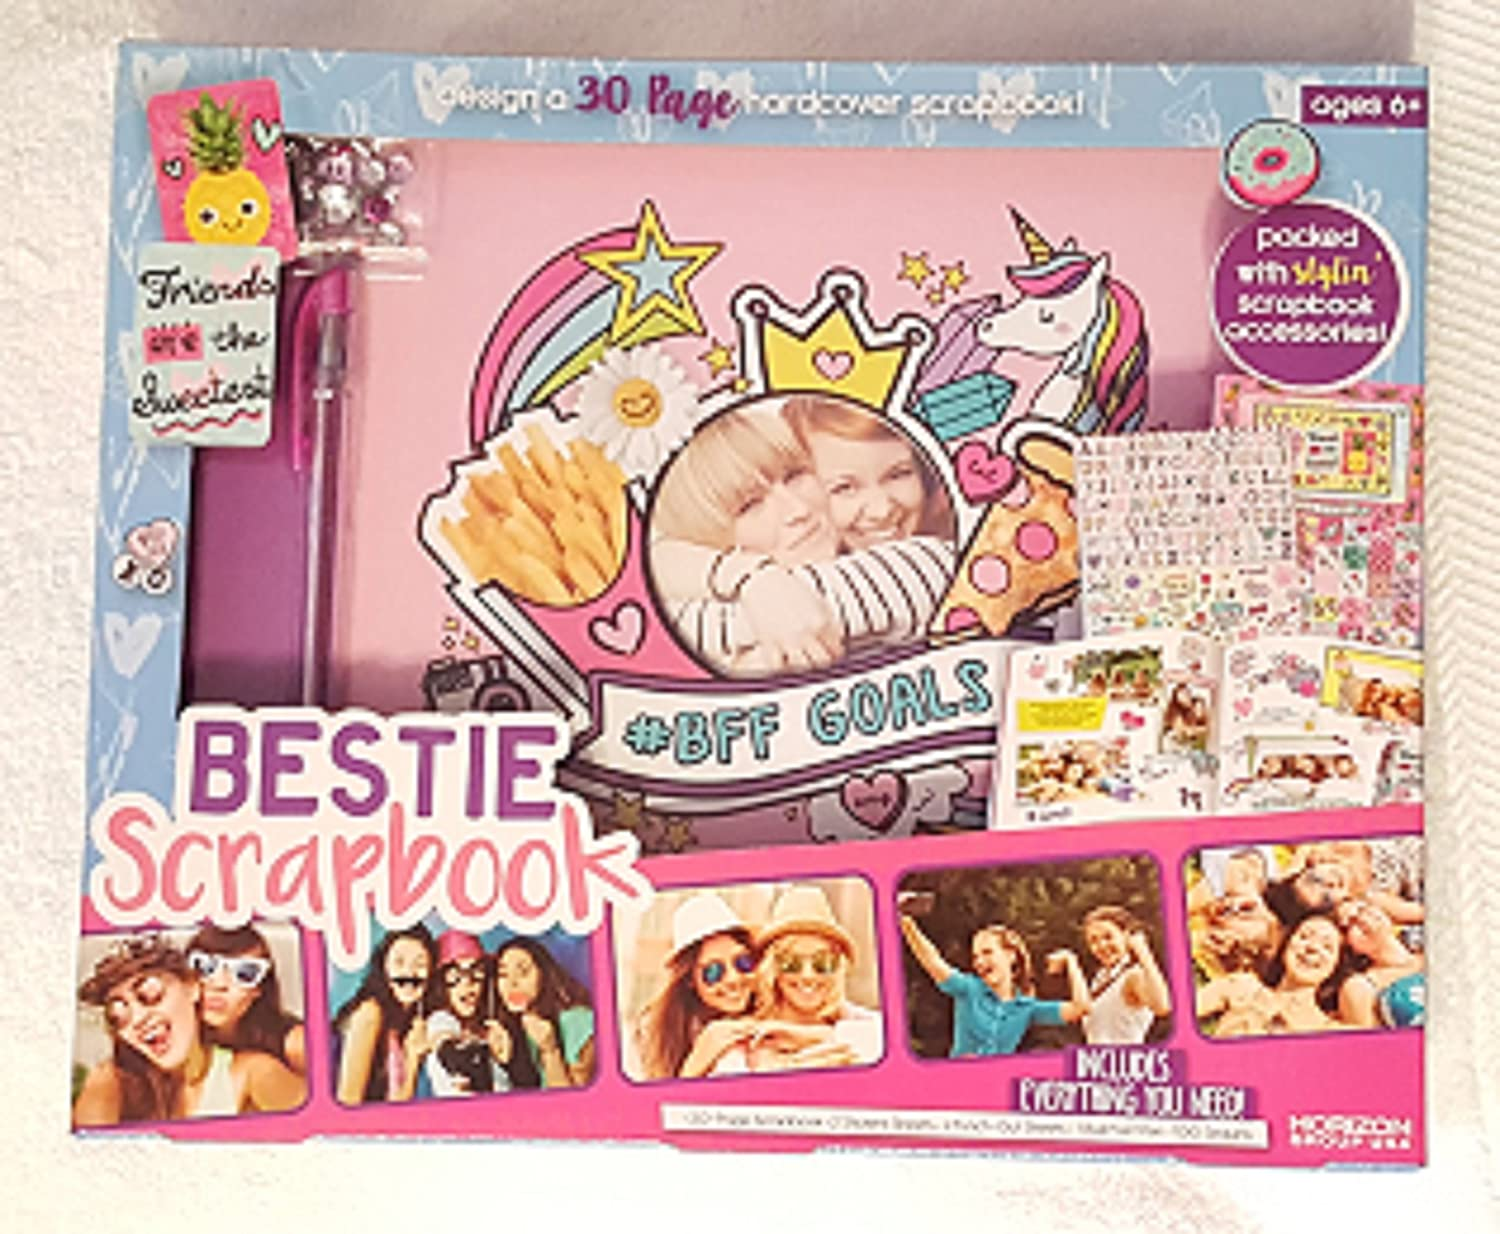 Bestie Scrapbook Kit with 30 Pages and Hardcover with Decoration Supplies Horizon Group USA Inc.